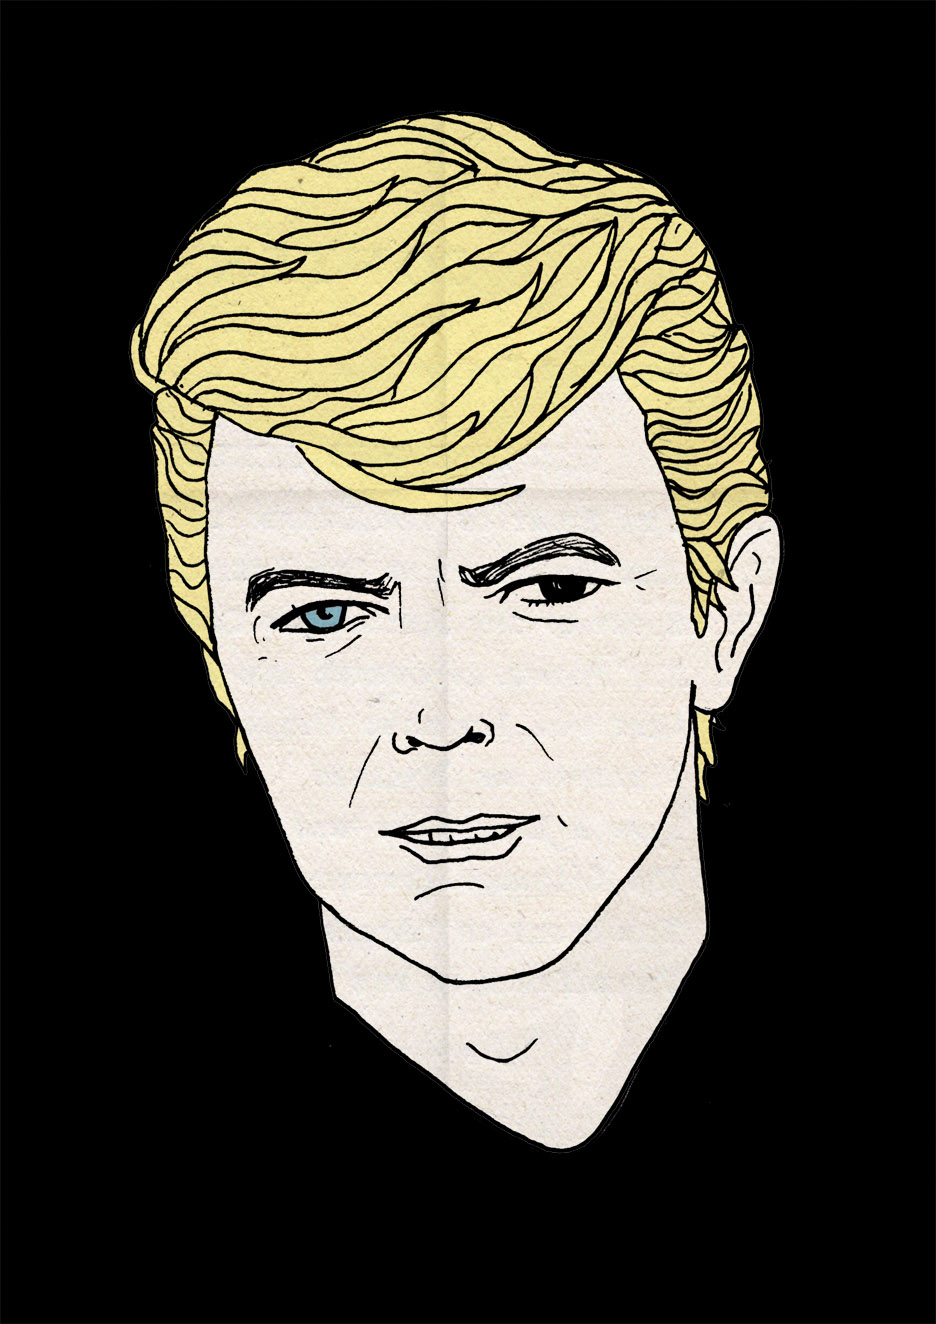 David Bowie illustration by Rich Fairhead